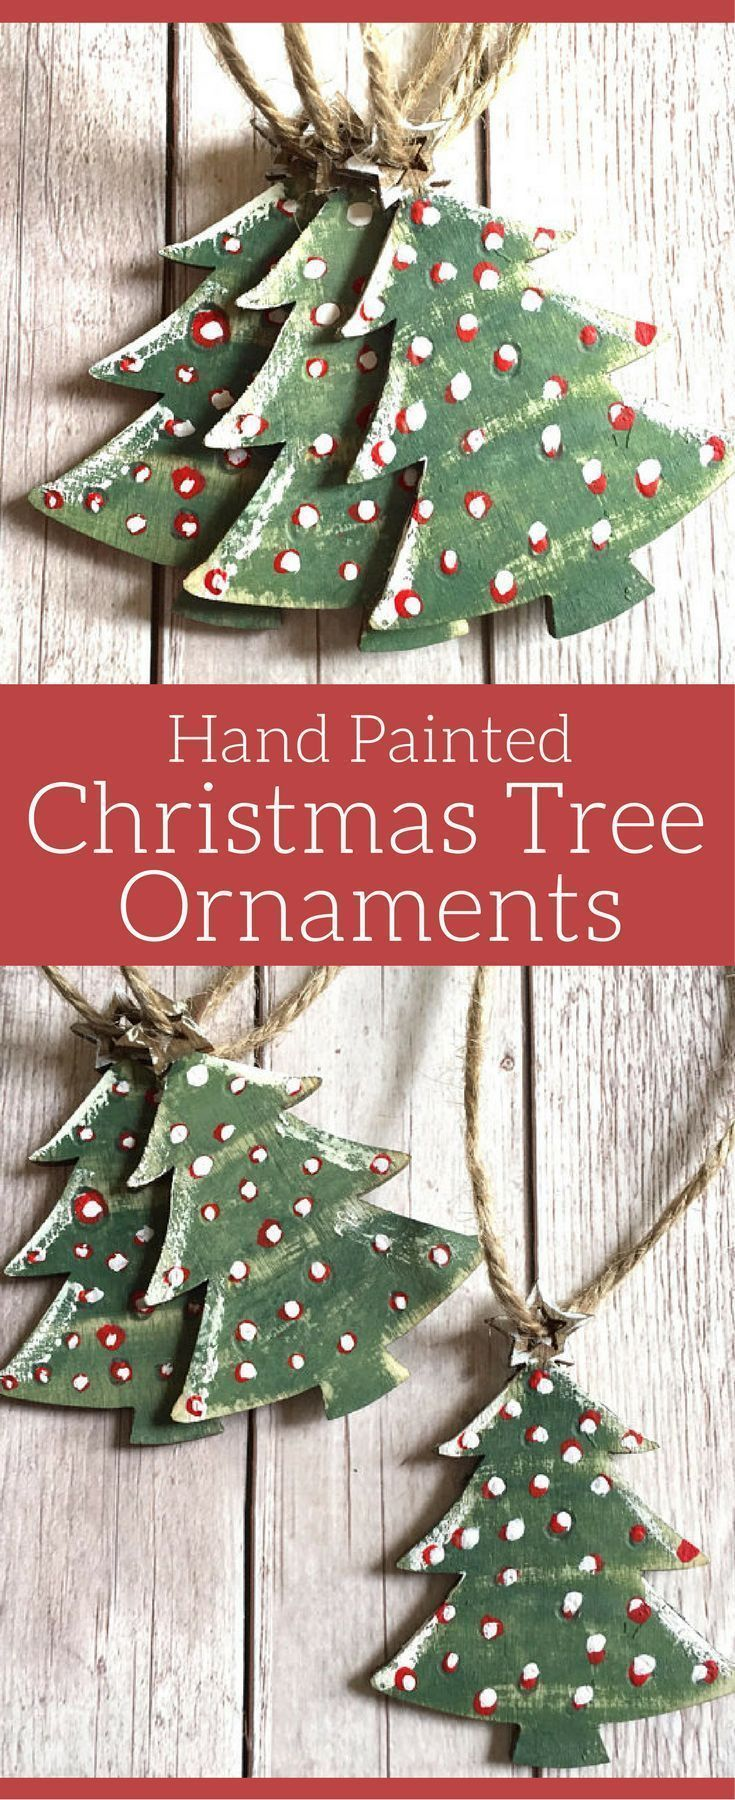 Christmas Tree Ornaments Christmas Decorations Set Of 3 Hand Painted Wooden Ornaments R Christmas Tree Ornaments Christmas Ornaments